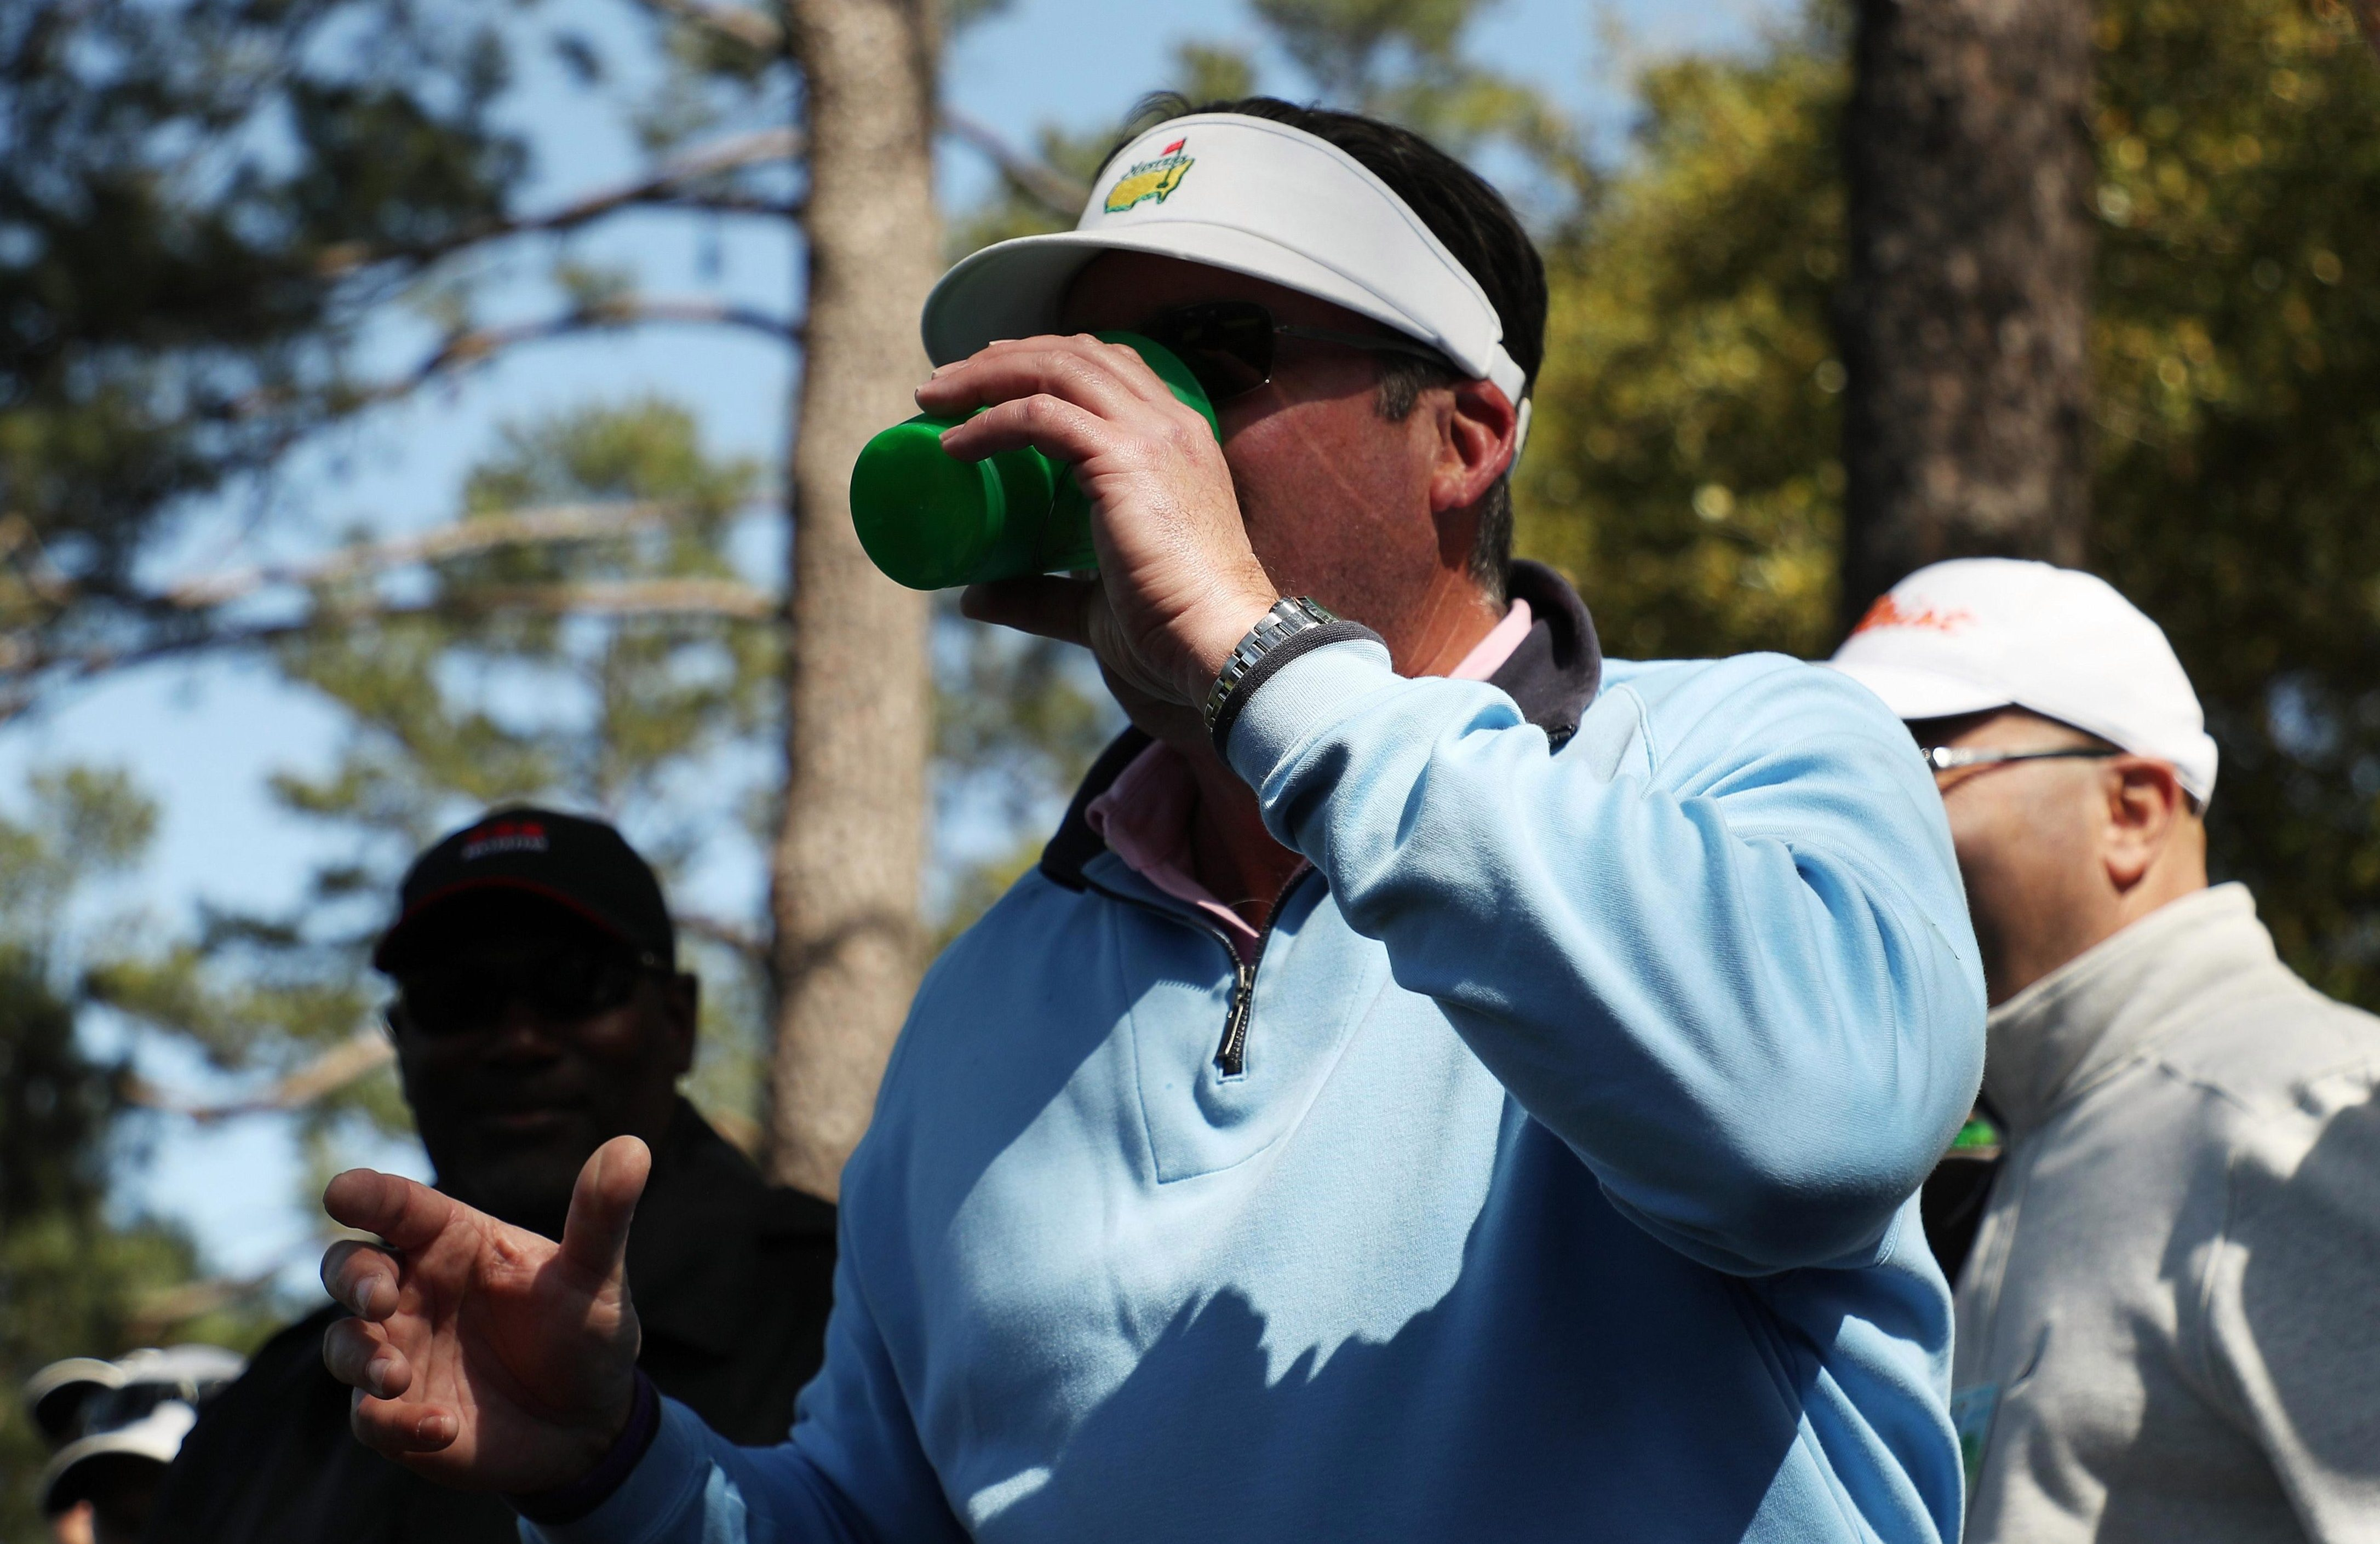 The spectator chugged his beer